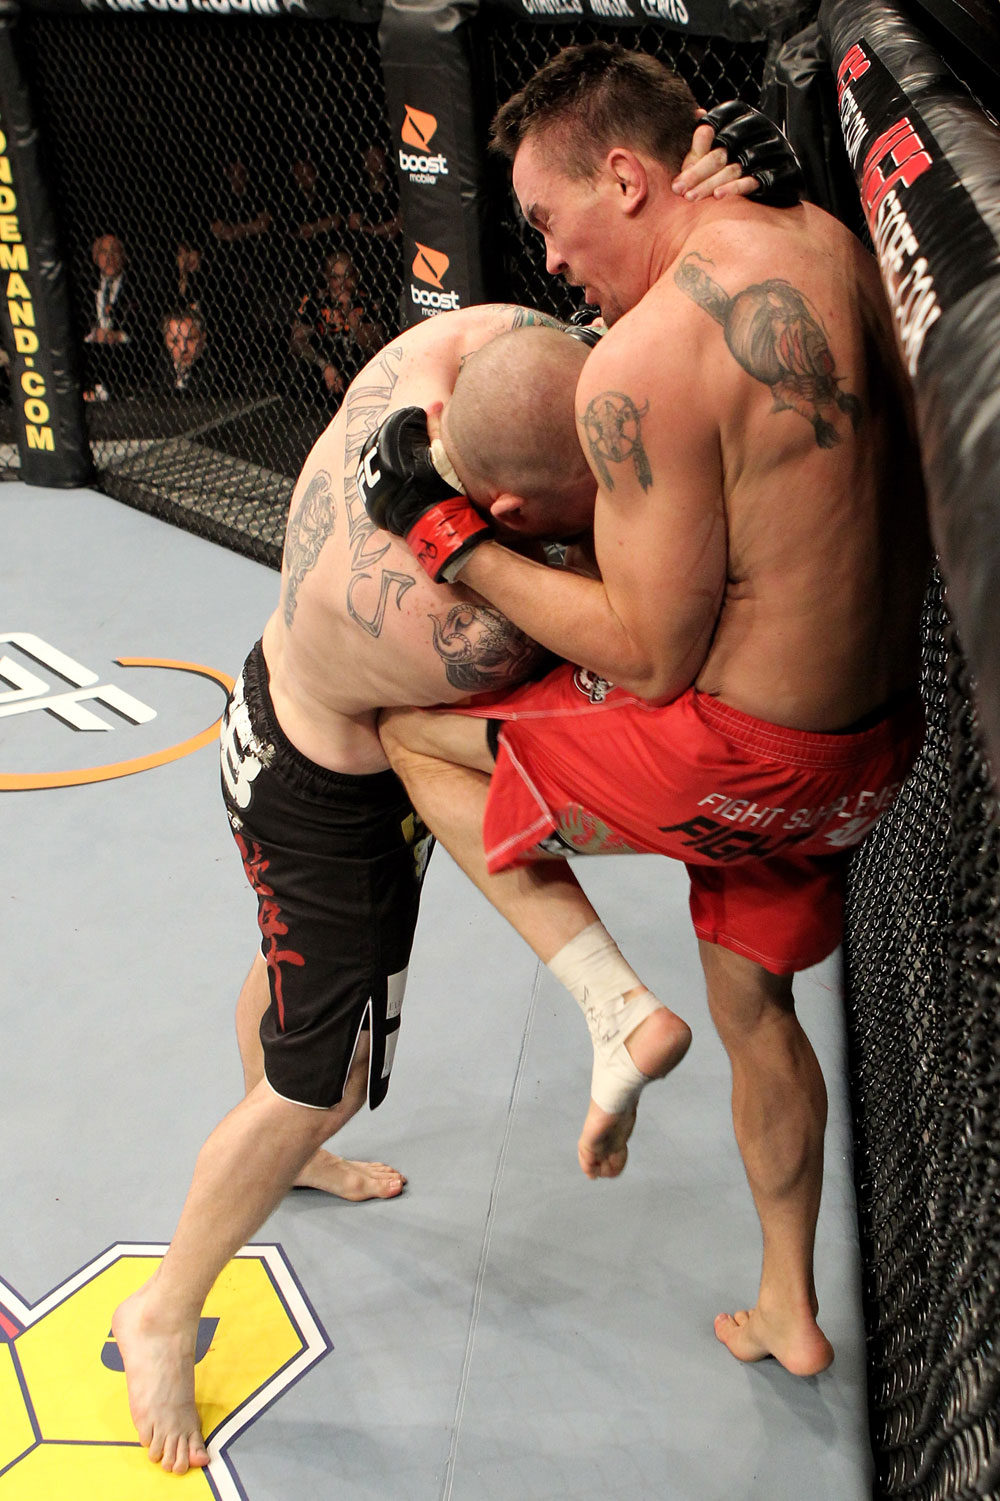 Kyle Noke of Australia fights Rob Kimmons (L) of the USA during their UFC Middleweight bout at the Konig Pilsner Arena on November 13, 2010 in Oberhausen, Germany. (Photo by Josh Hedges/Zuffa LLC/Zuffa LLC)